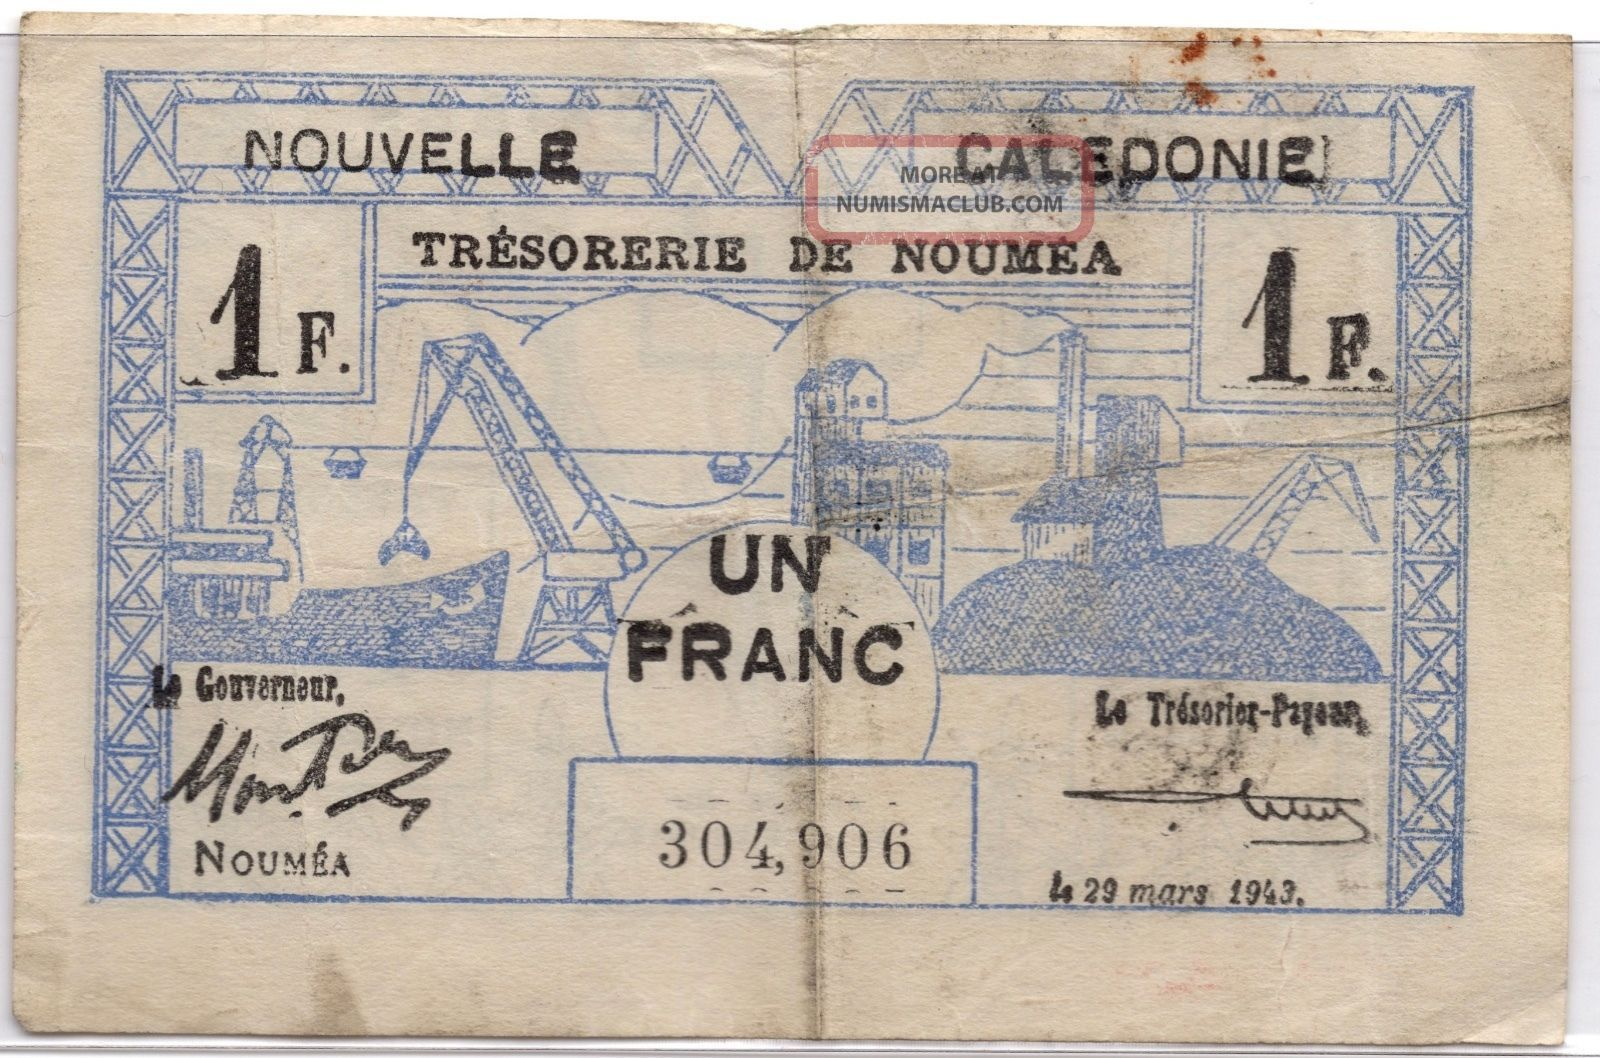 Ww2 Un Franc France Nouvelle Caledonie March 29 1943 Note 2 Australia & Oceania photo